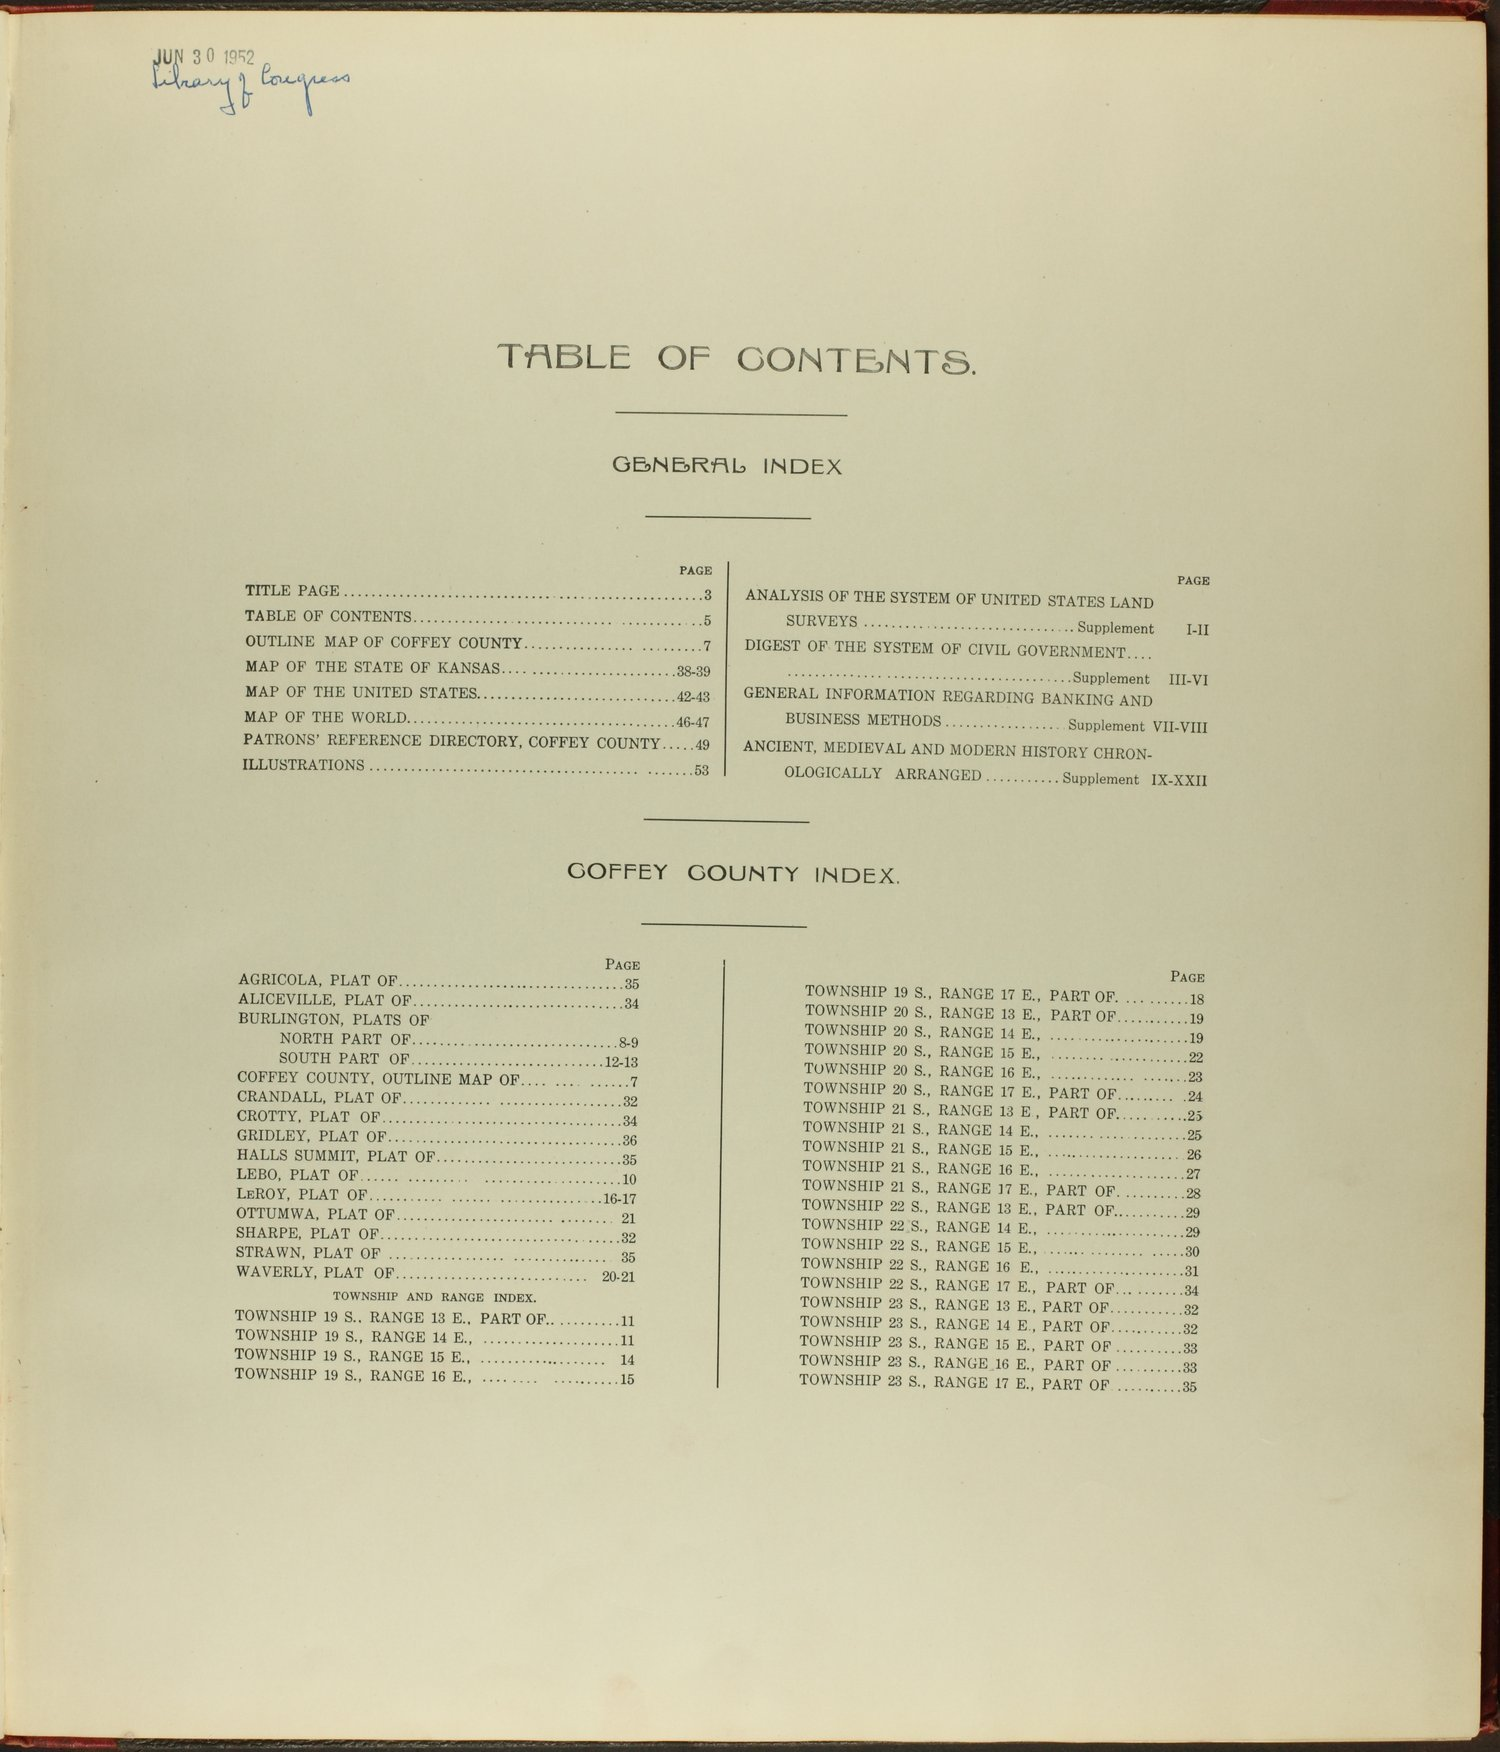 Standard atlas of Coffey County, Kansas - Table of Contents